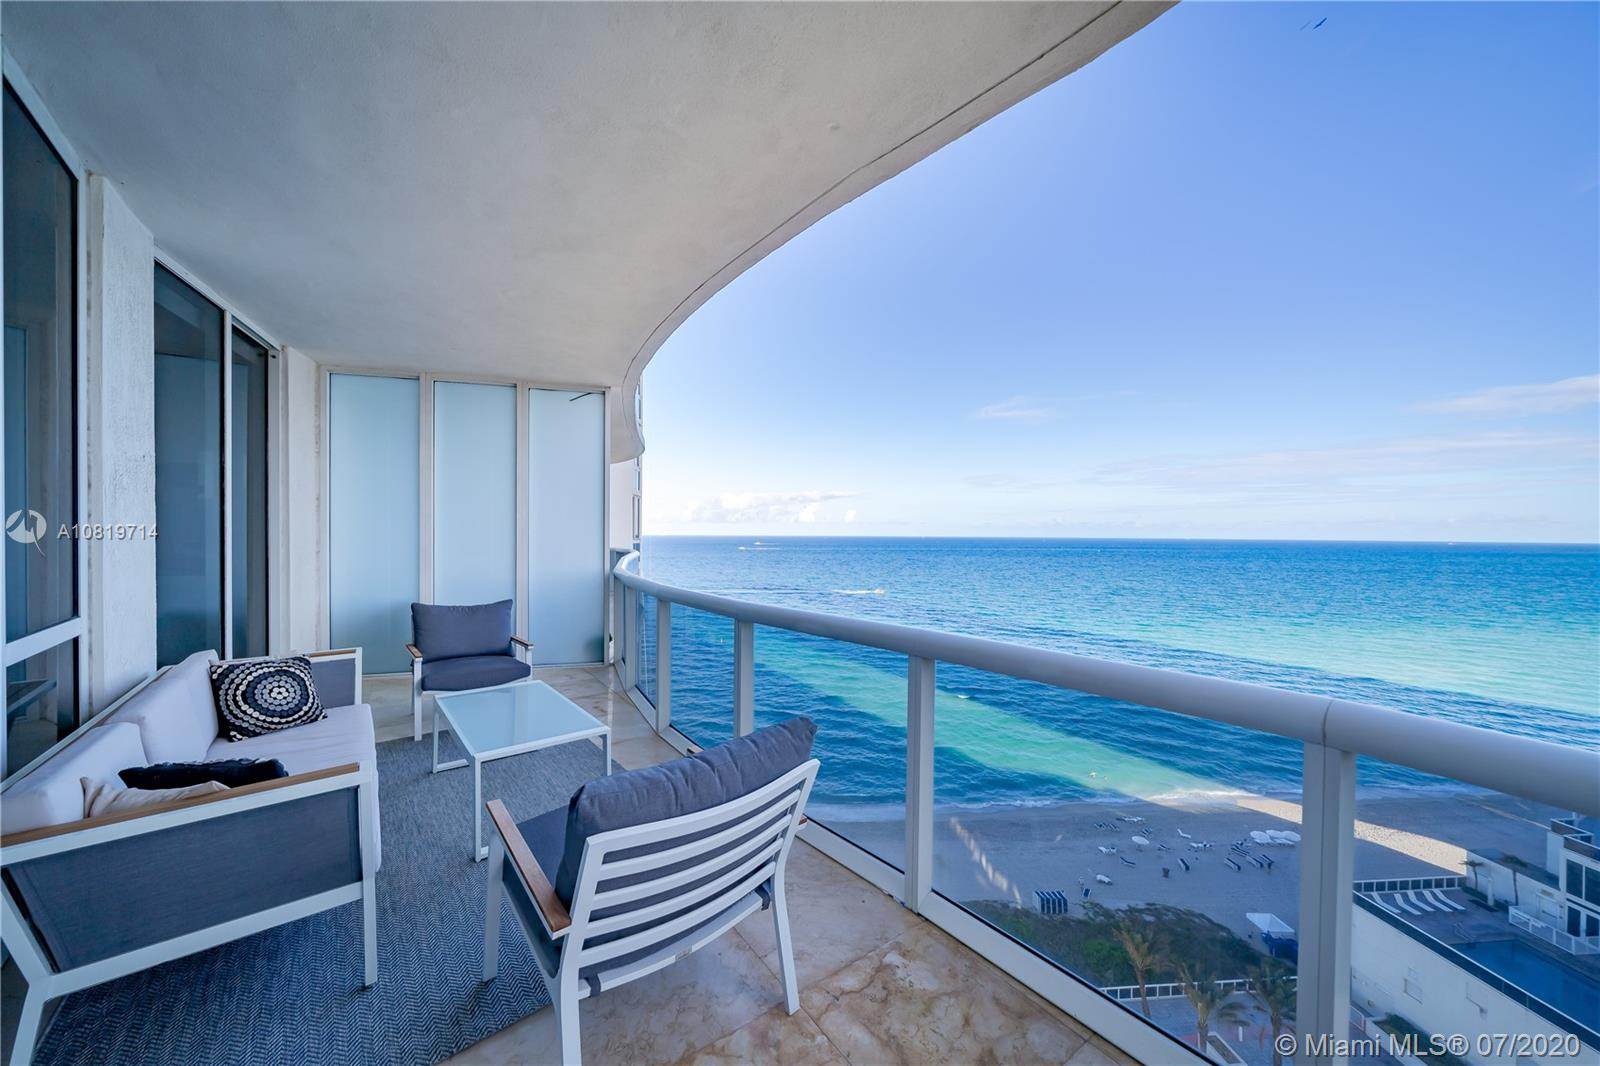 16001 Collins Ave # 1407, Sunny Isles Beach, Florida 33160, 3 Bedrooms Bedrooms, ,3 BathroomsBathrooms,Residential,For Sale,16001 Collins Ave # 1407,A10819714